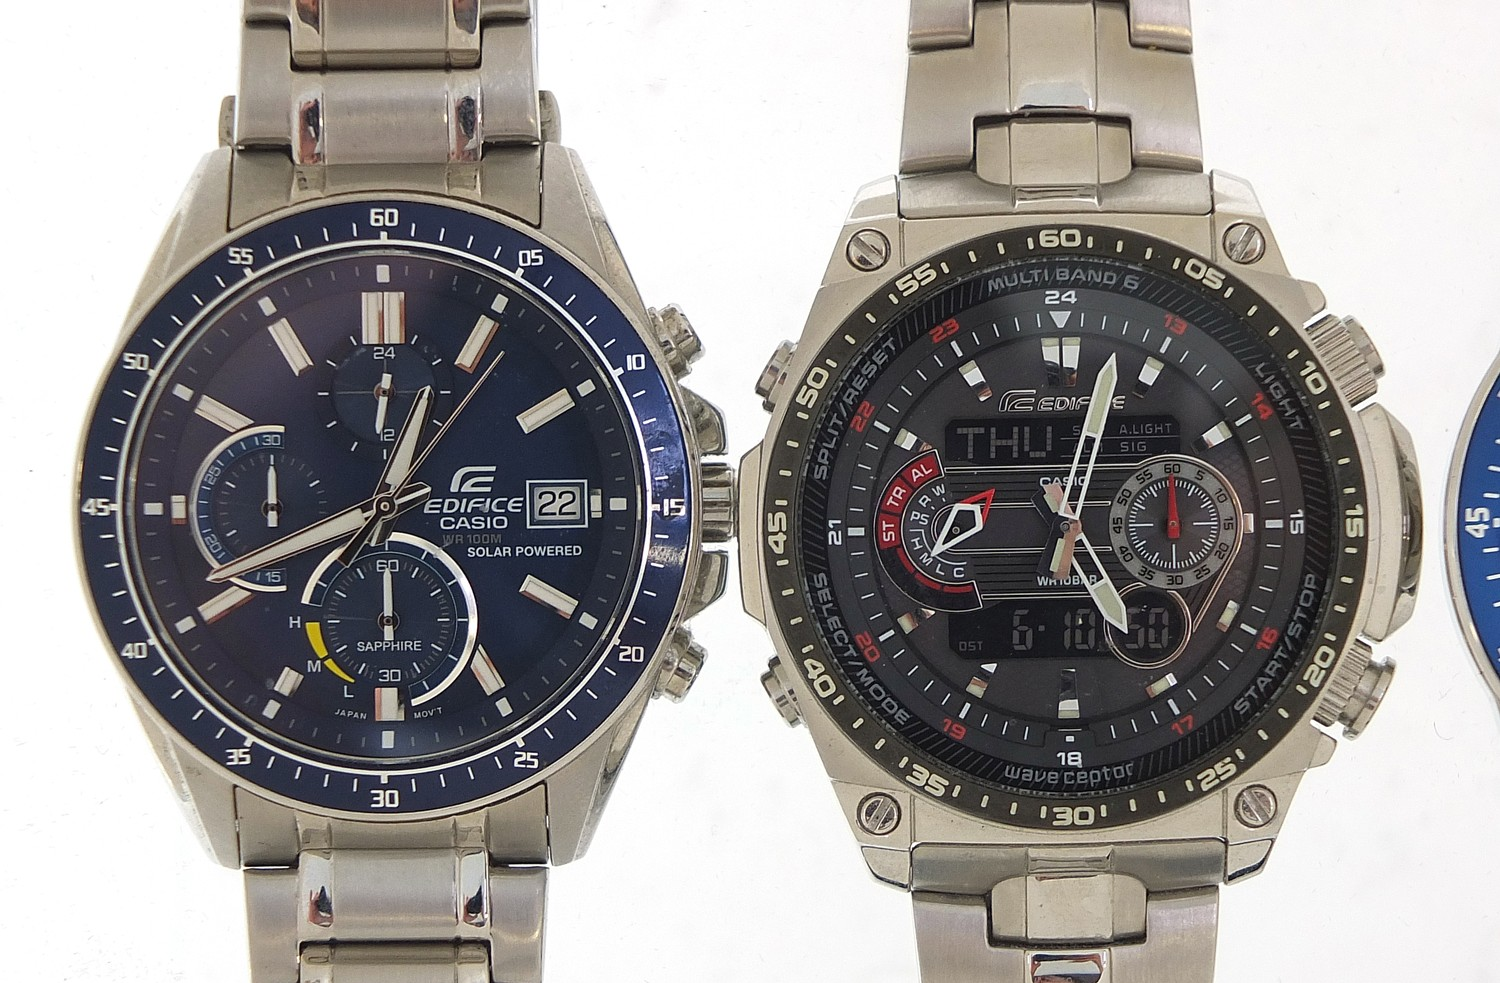 Four gentlemen's Casio Edifice wristwatches, three with boxes and paperwork, models EFR-545, ECW- - Image 2 of 6